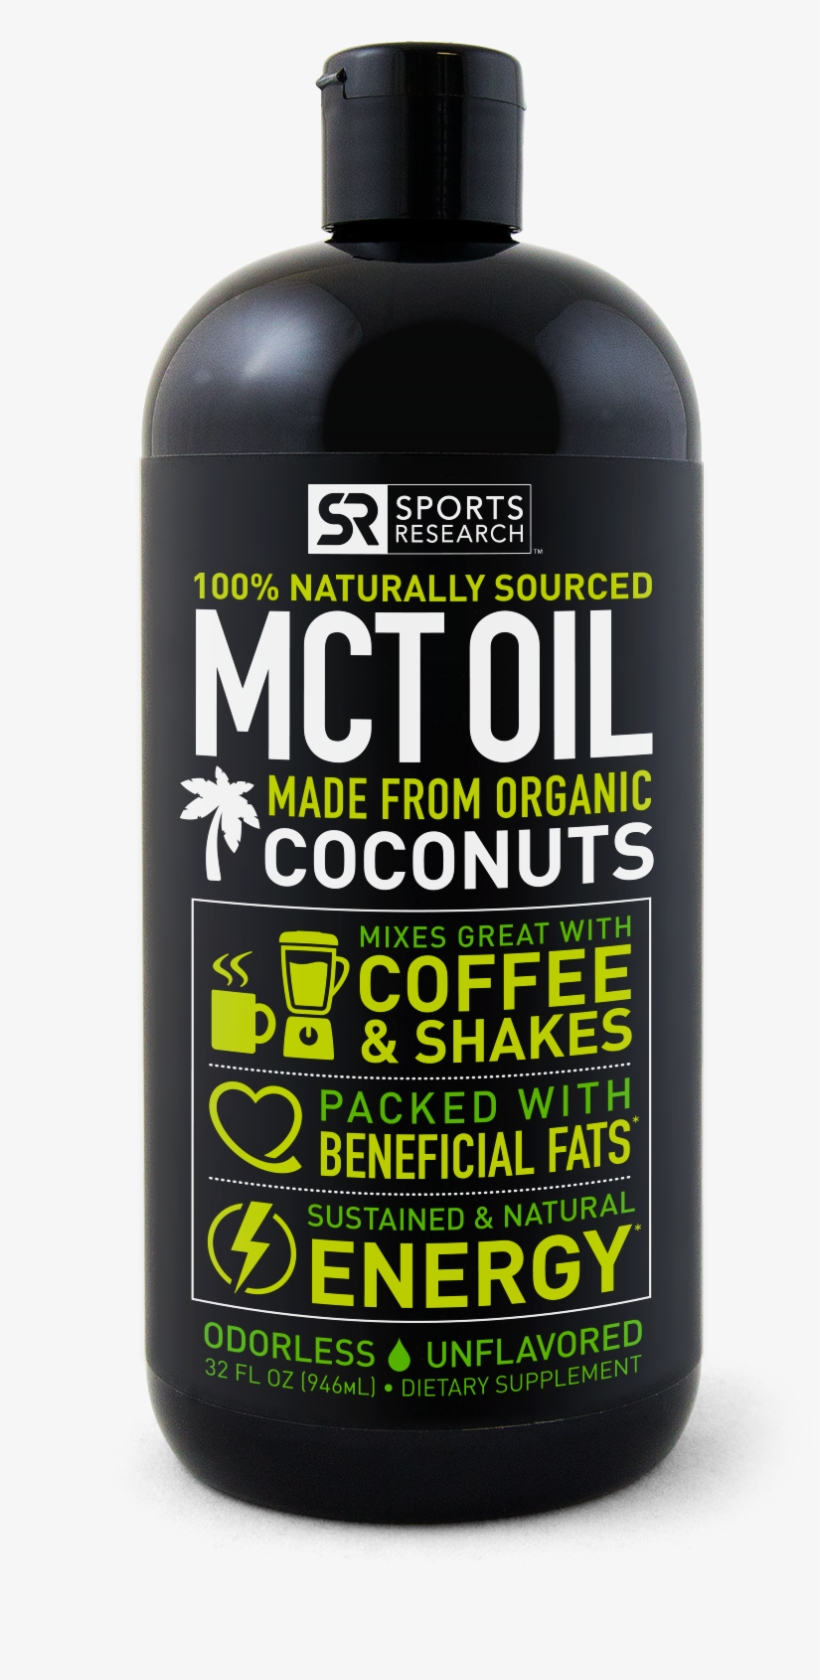 Sports Research Liquid Softgel Supplements That Have - Premium Mct Oil Derived Only From Coconut Oil, transparent png #2440507